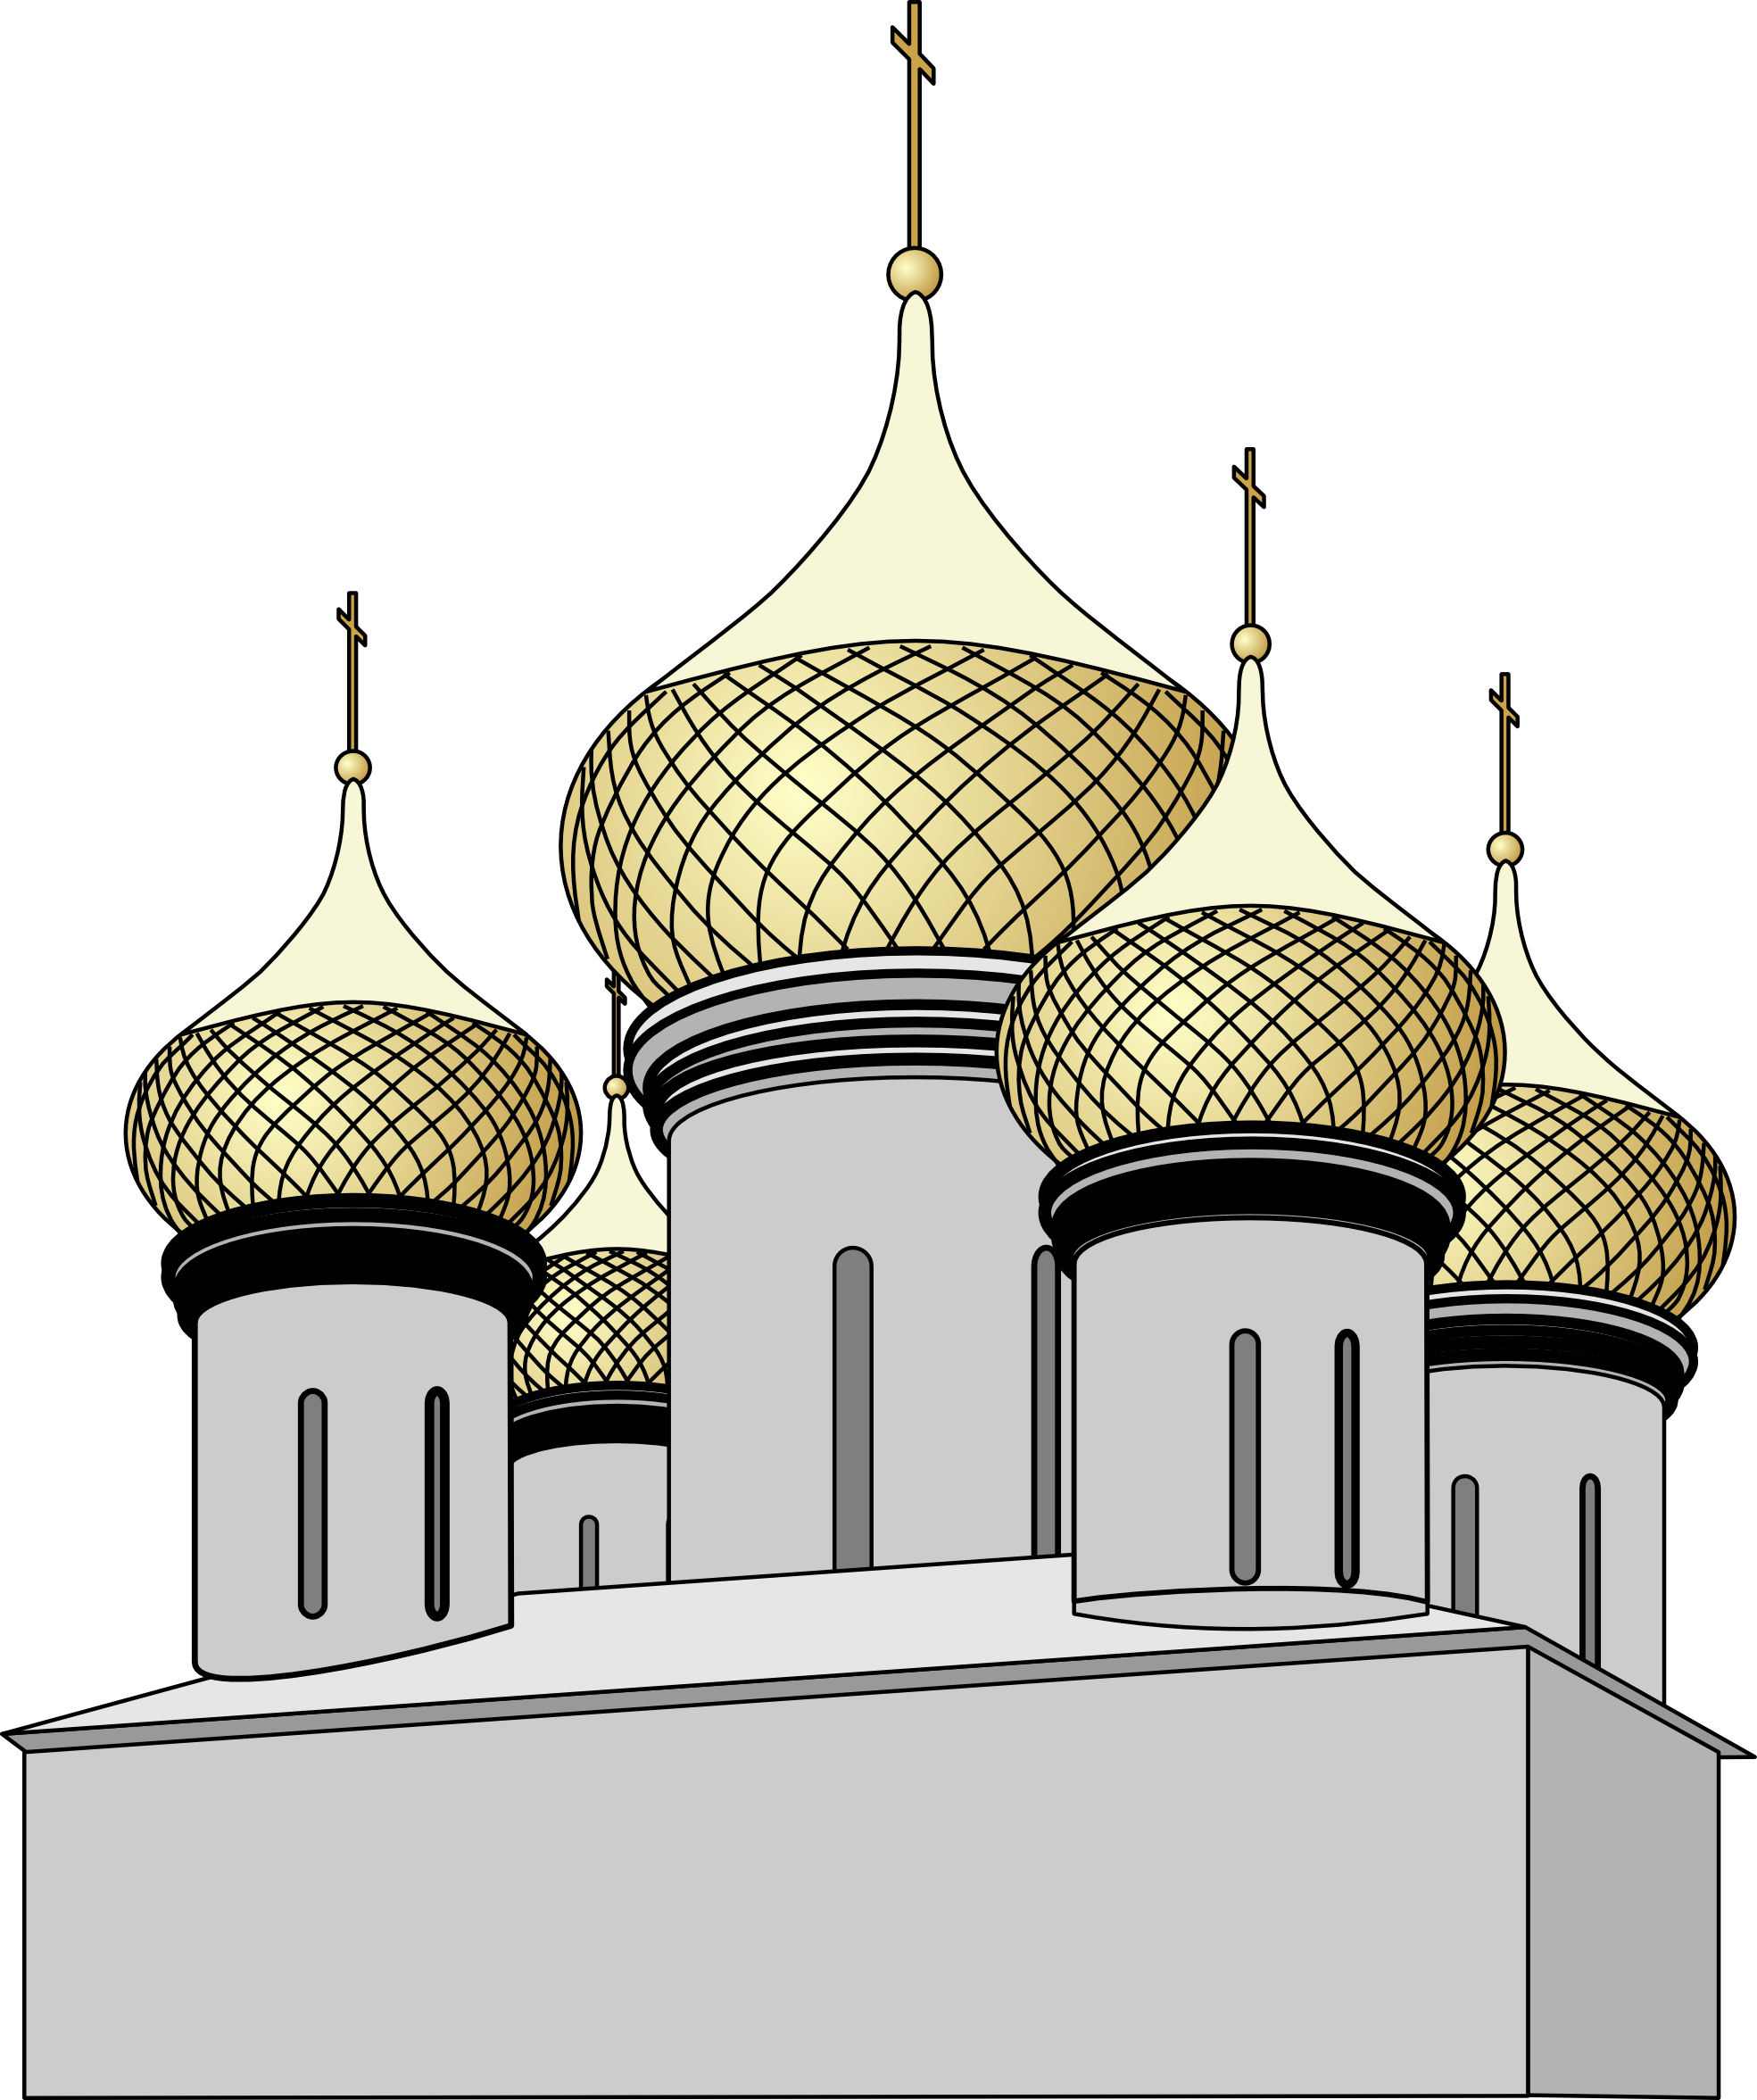 Palace clipart oriental. Mosque arabe pinterest